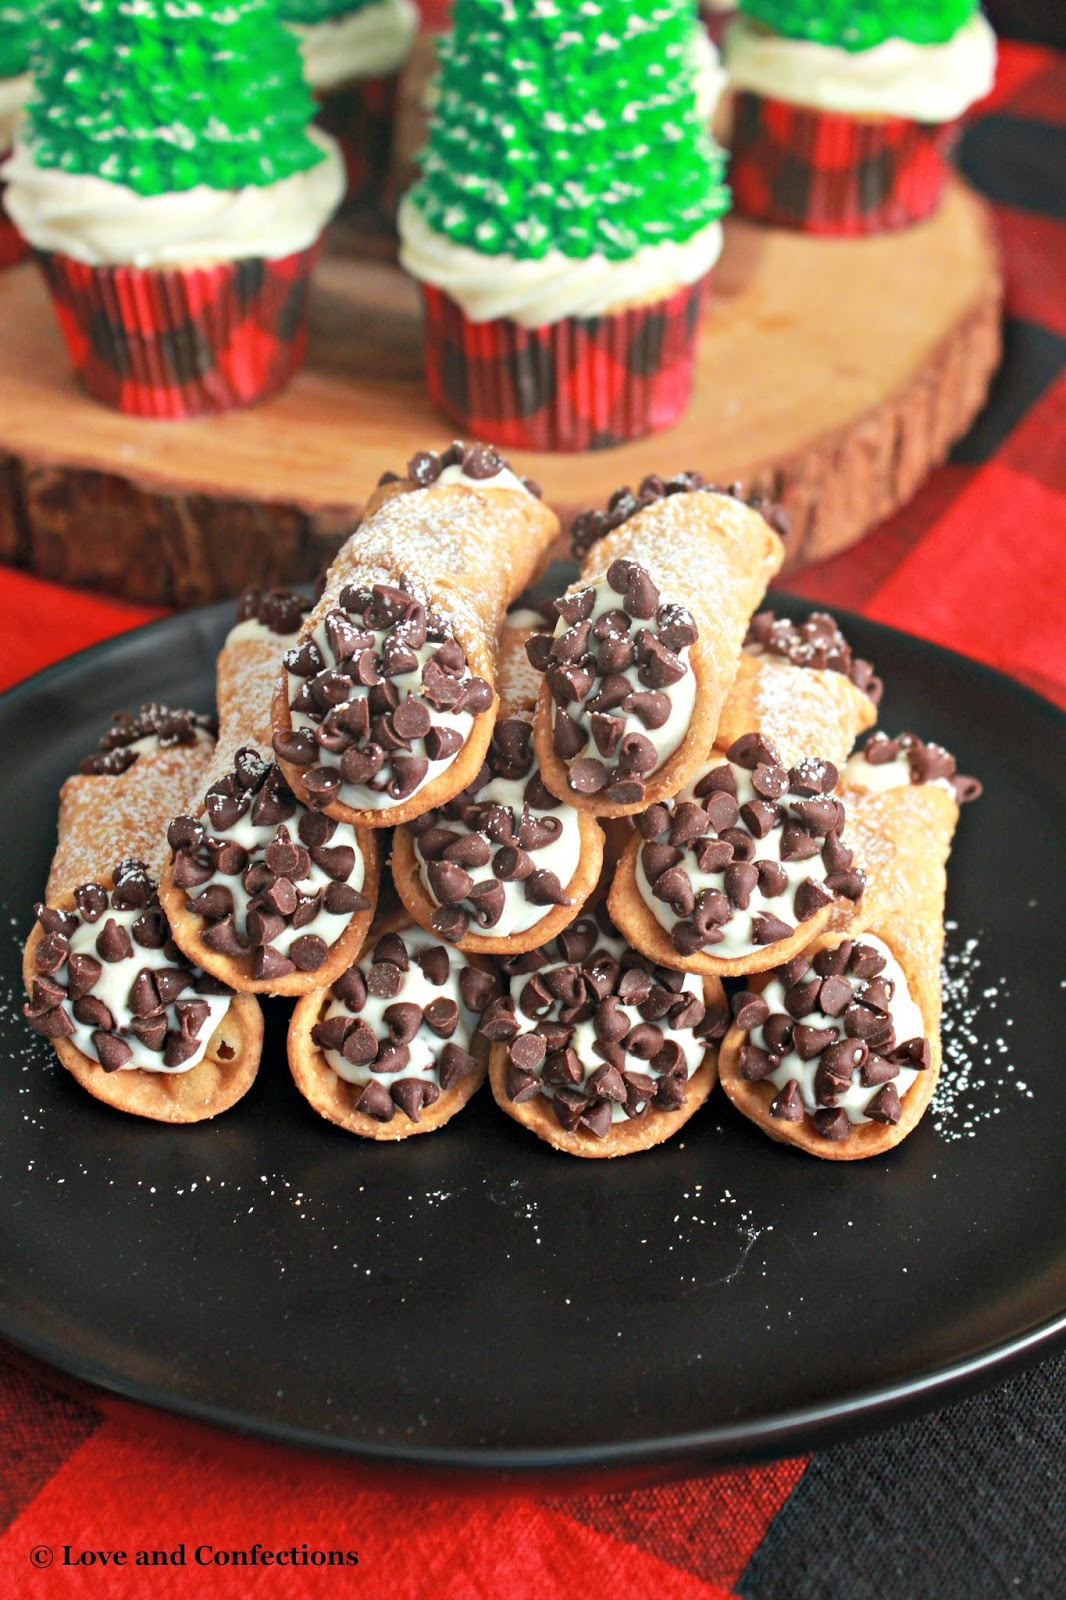 italian dessert 8 letters and confections cupcakes cannoli and chocolate dip 53572